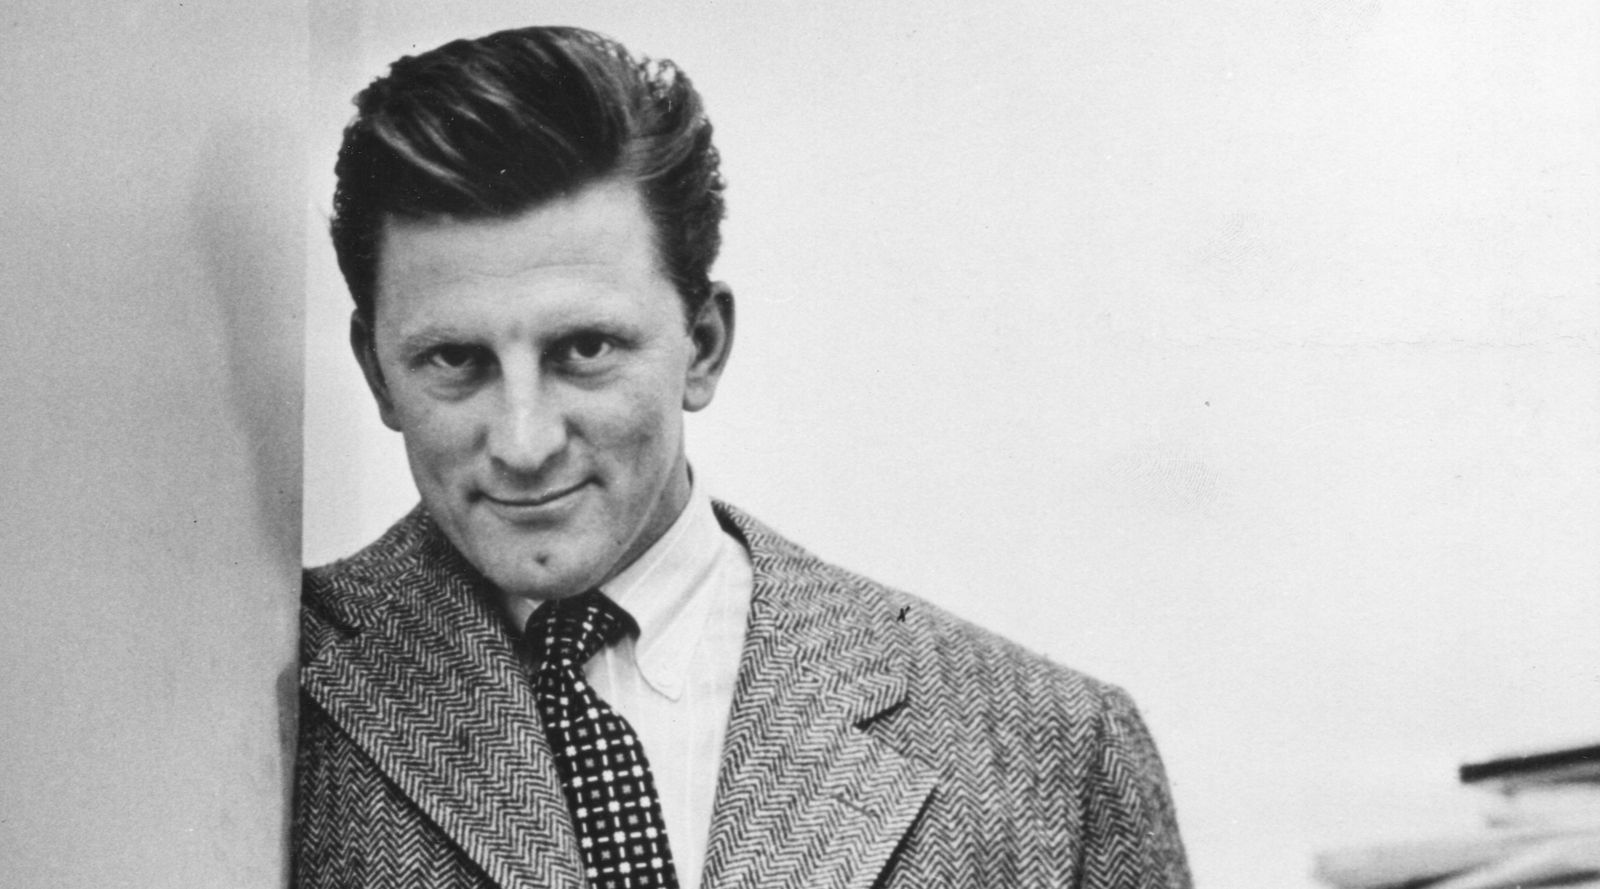 Kirk Douglas, la star indomptée de l'âge d'or d'Hollywood